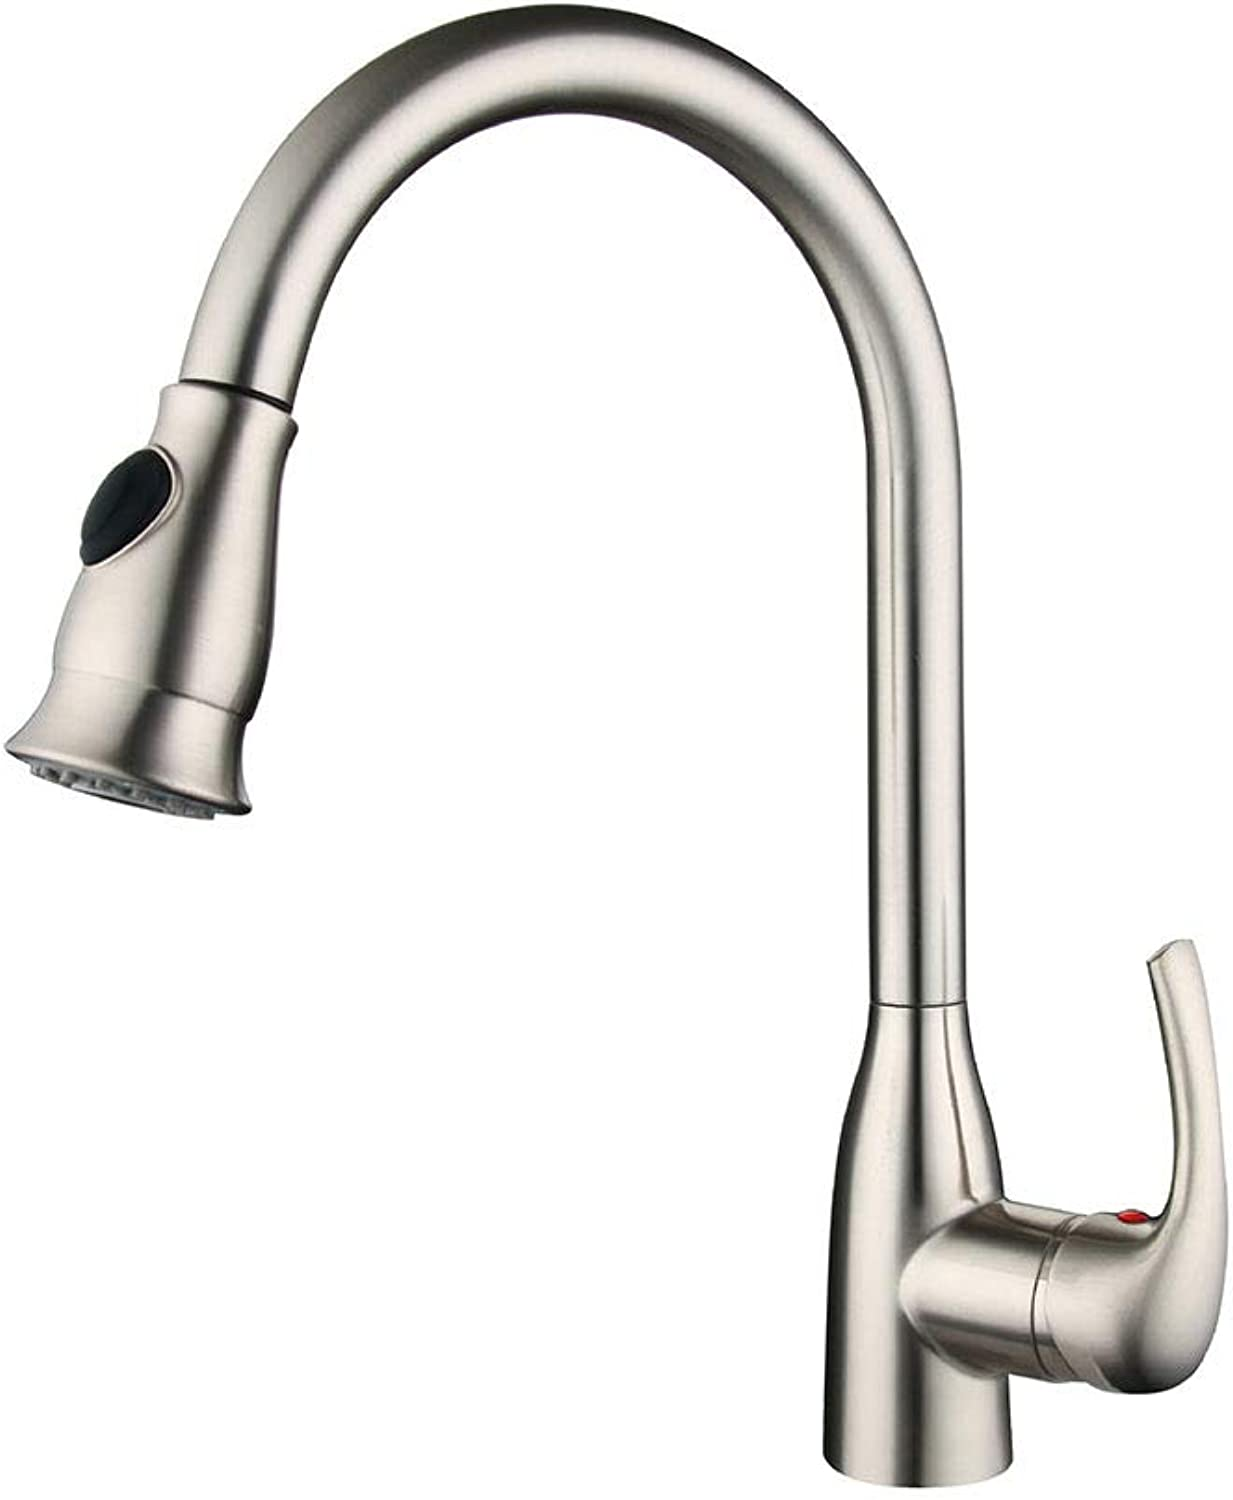 Pull Out Kitchen Faucet Single Handle Bathroom Kitchen Hot and Cold Water Taps Deck Mounted Luxury Chrome Brass Single Handle High Arc Kitchen Sink